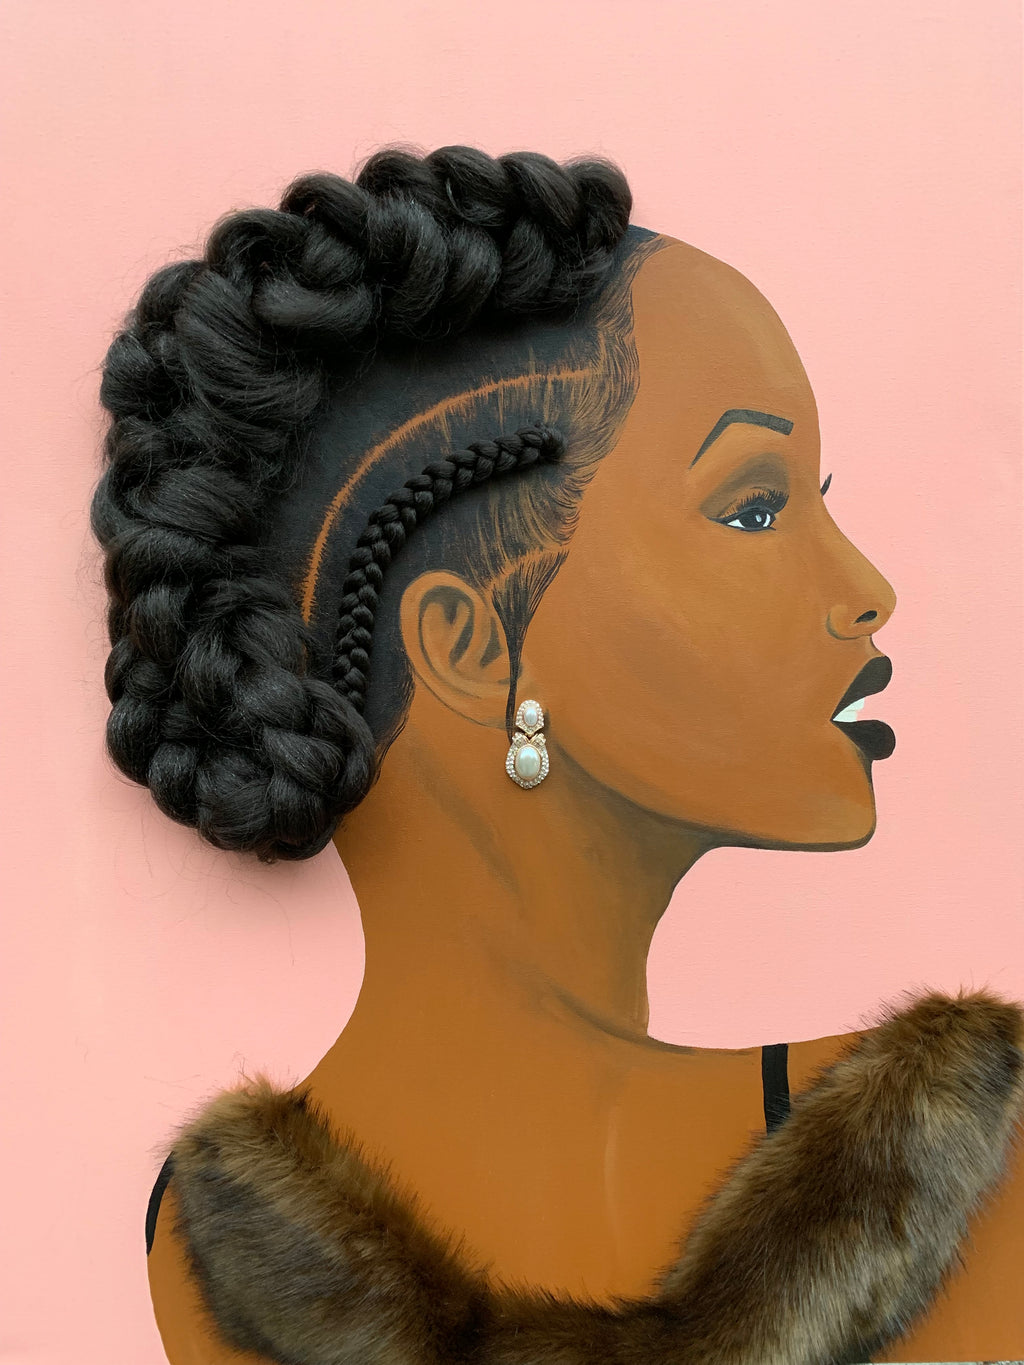 Canvas Print of a 'Elegant', featuring a woman with braided hair and fur. This print has real hair added!  Mixed media: Hair, ready to hang canvas print.  This Item will take approximately 3-4 weeks to receive. This is a made to order item.